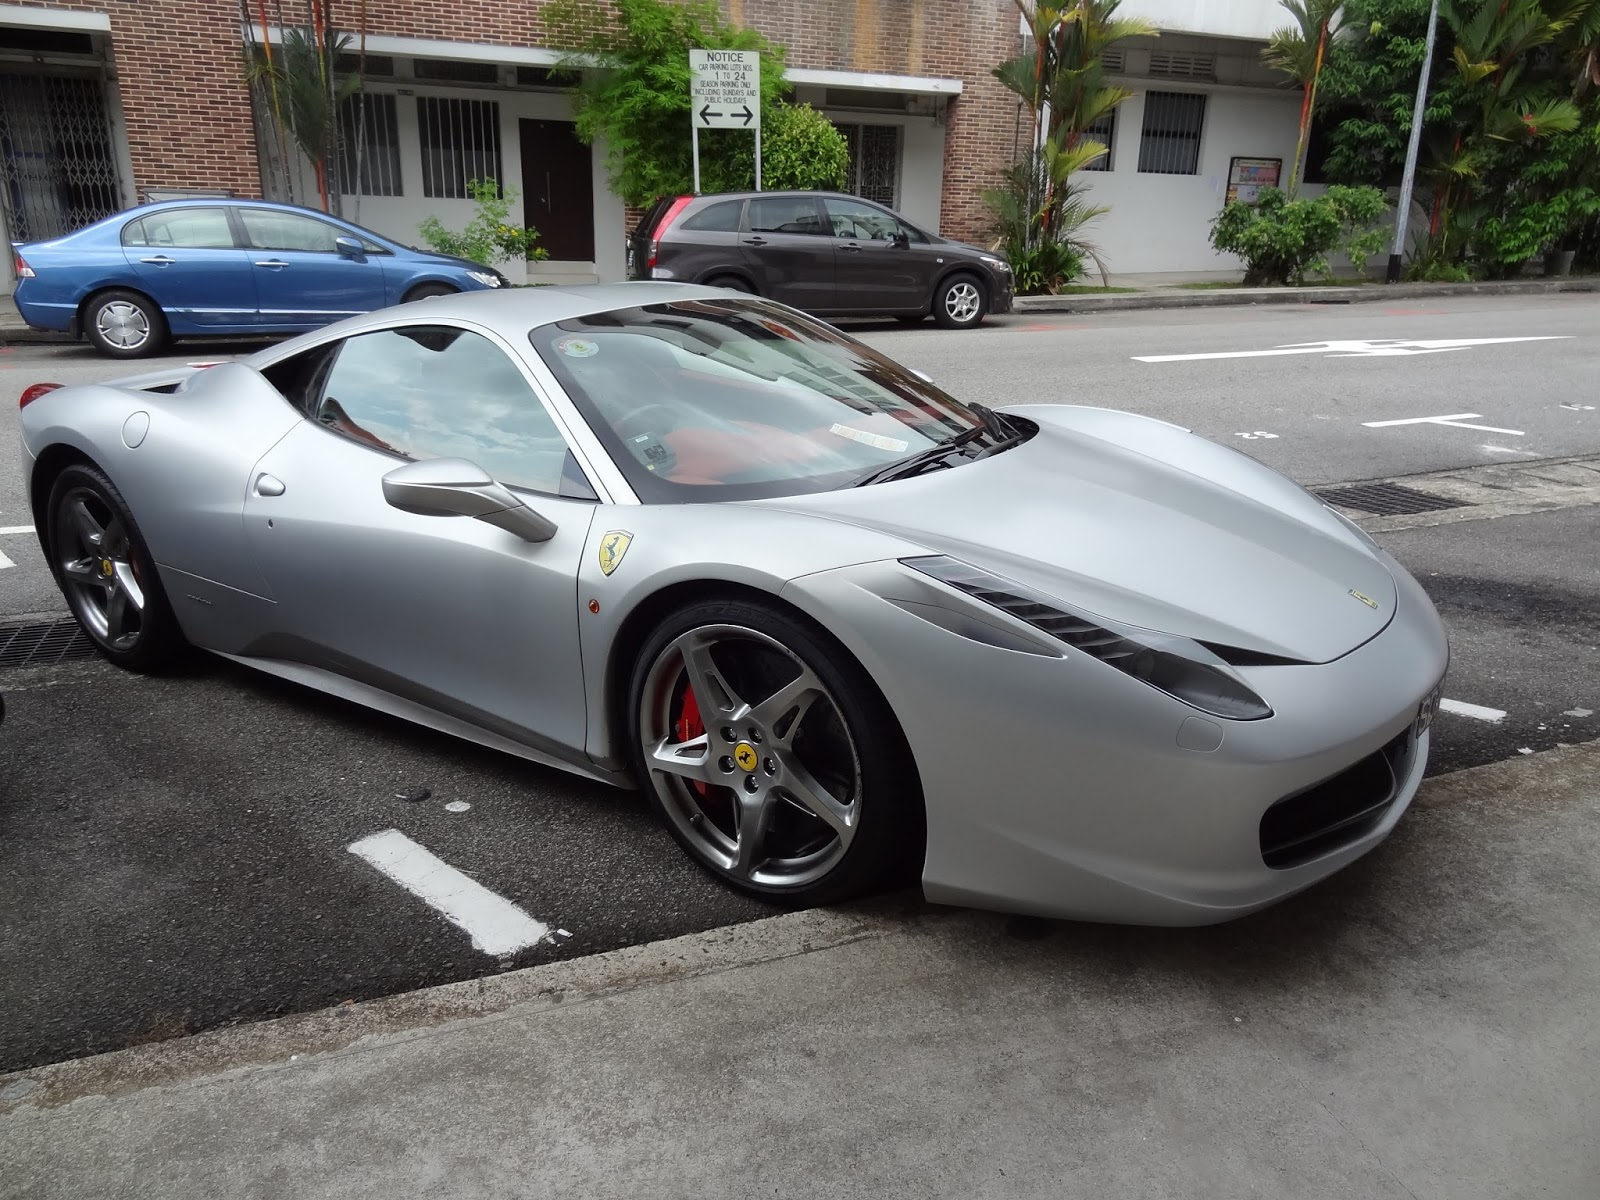 shaun owyeong ferrari 458 italia matt silver tiong bahru. Black Bedroom Furniture Sets. Home Design Ideas